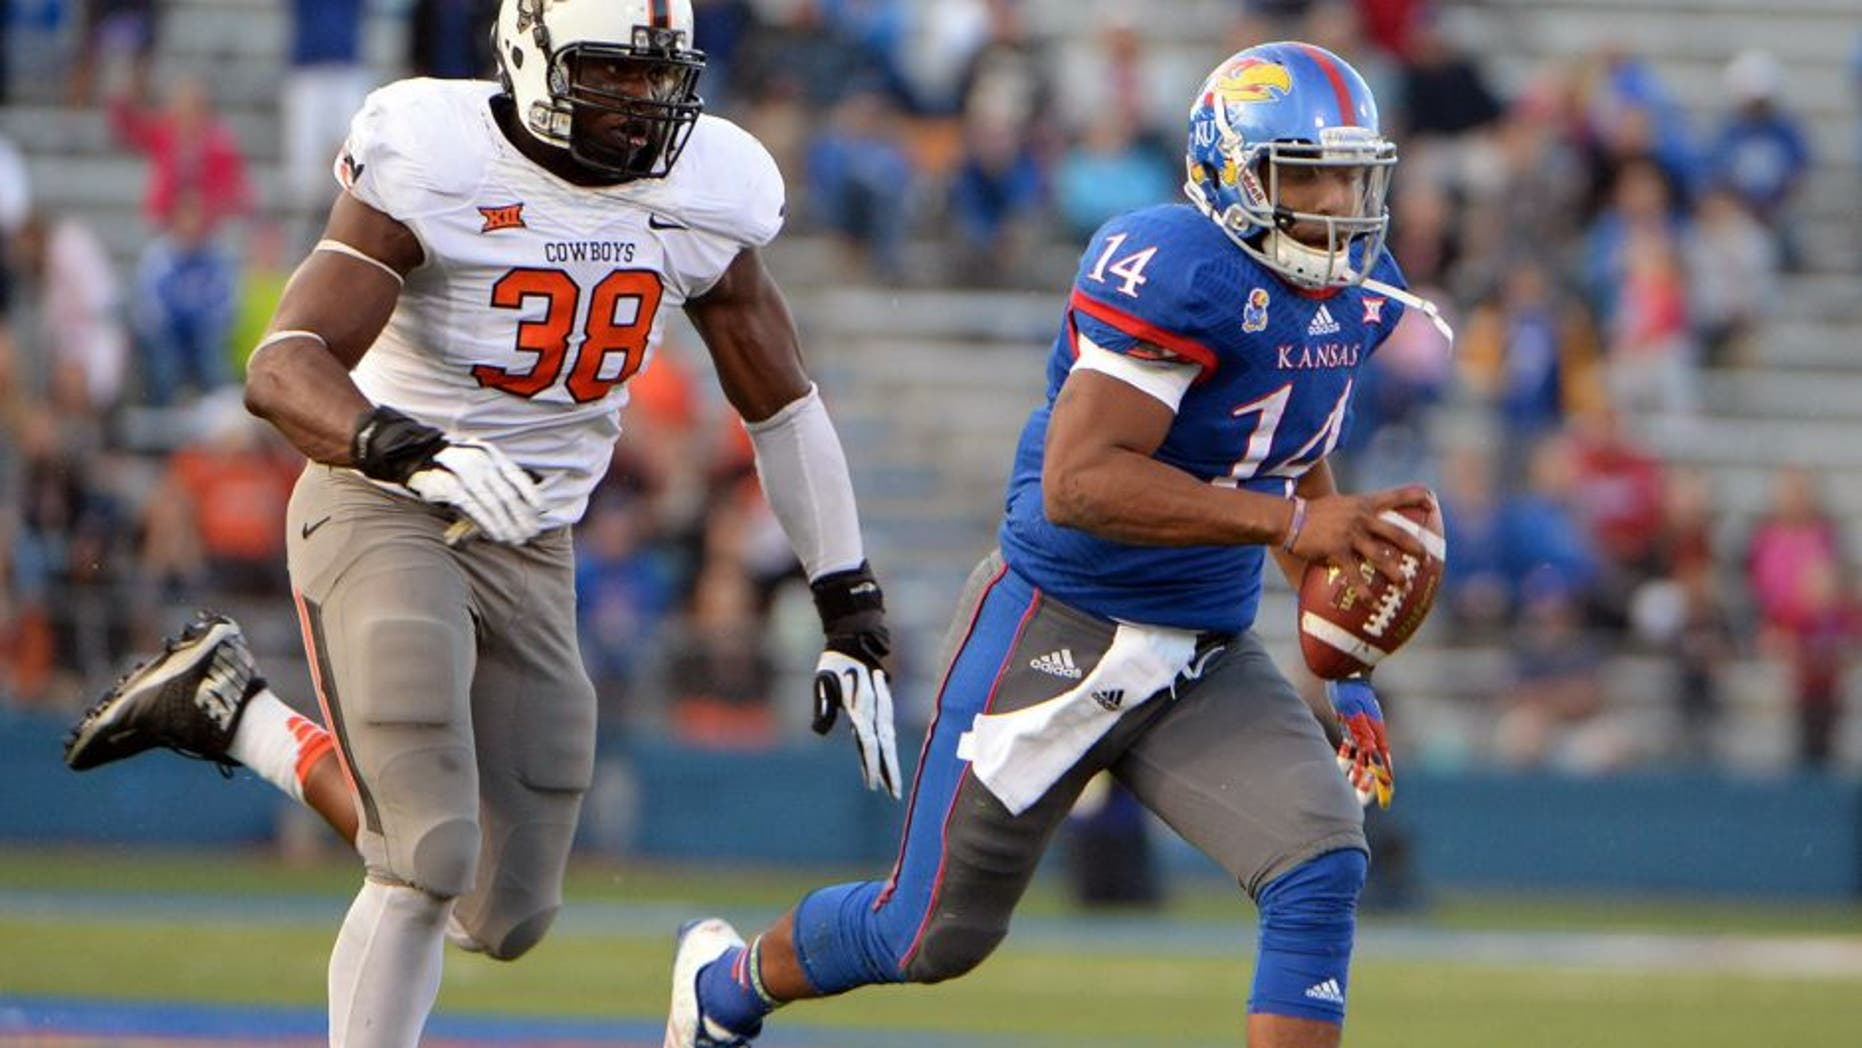 Oct 11, 2014; Lawrence, KS, USA; Kansas Jayhawks quarterback Michael Cummings (14) is chased by Oklahoma State Cowboys defensive end Emmanuel Ogbah (38) in the second half at Memorial Stadium. Oklahoma State won the game 27-20. Mandatory Credit: John Rieger-USA TODAY Sports